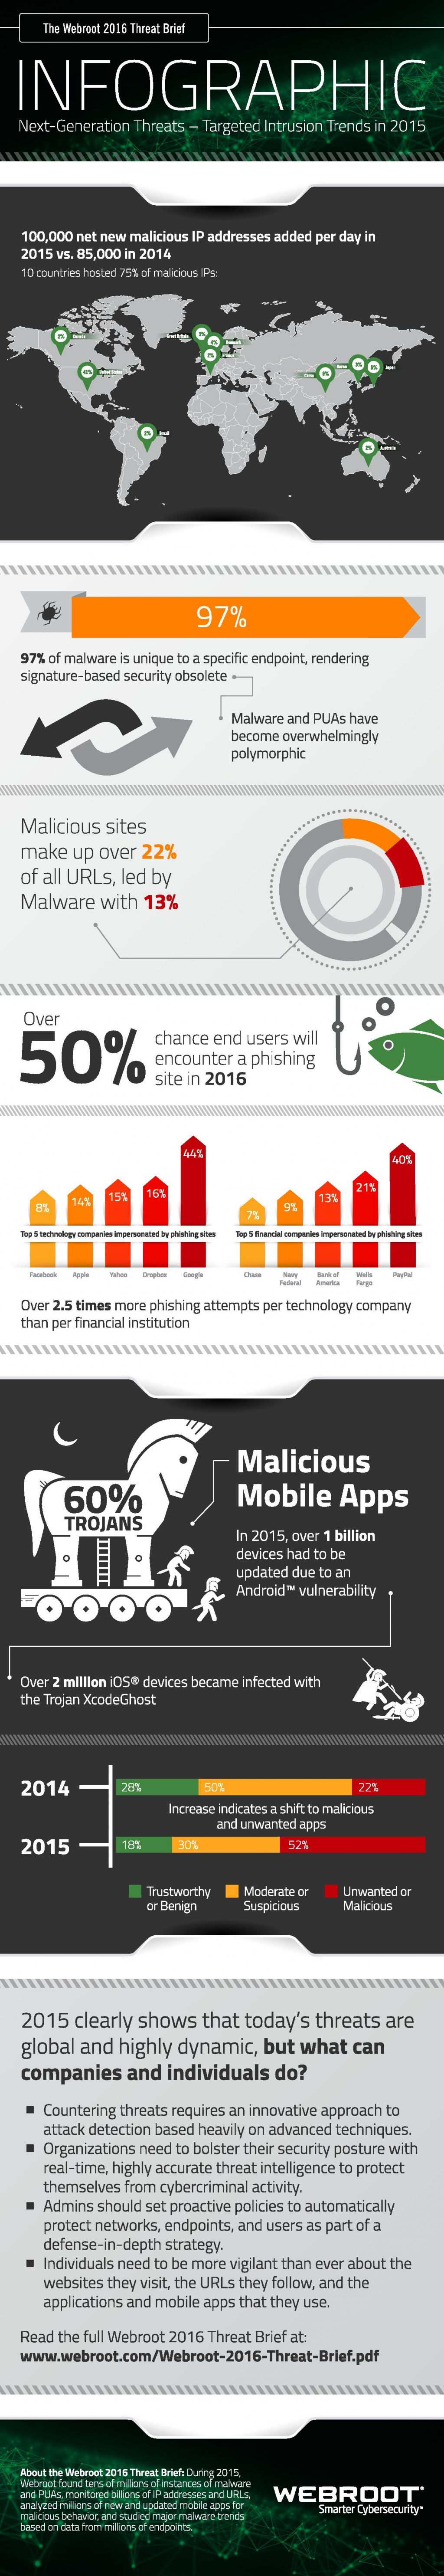 infographic-webroot-2016-threat-brief-page-001